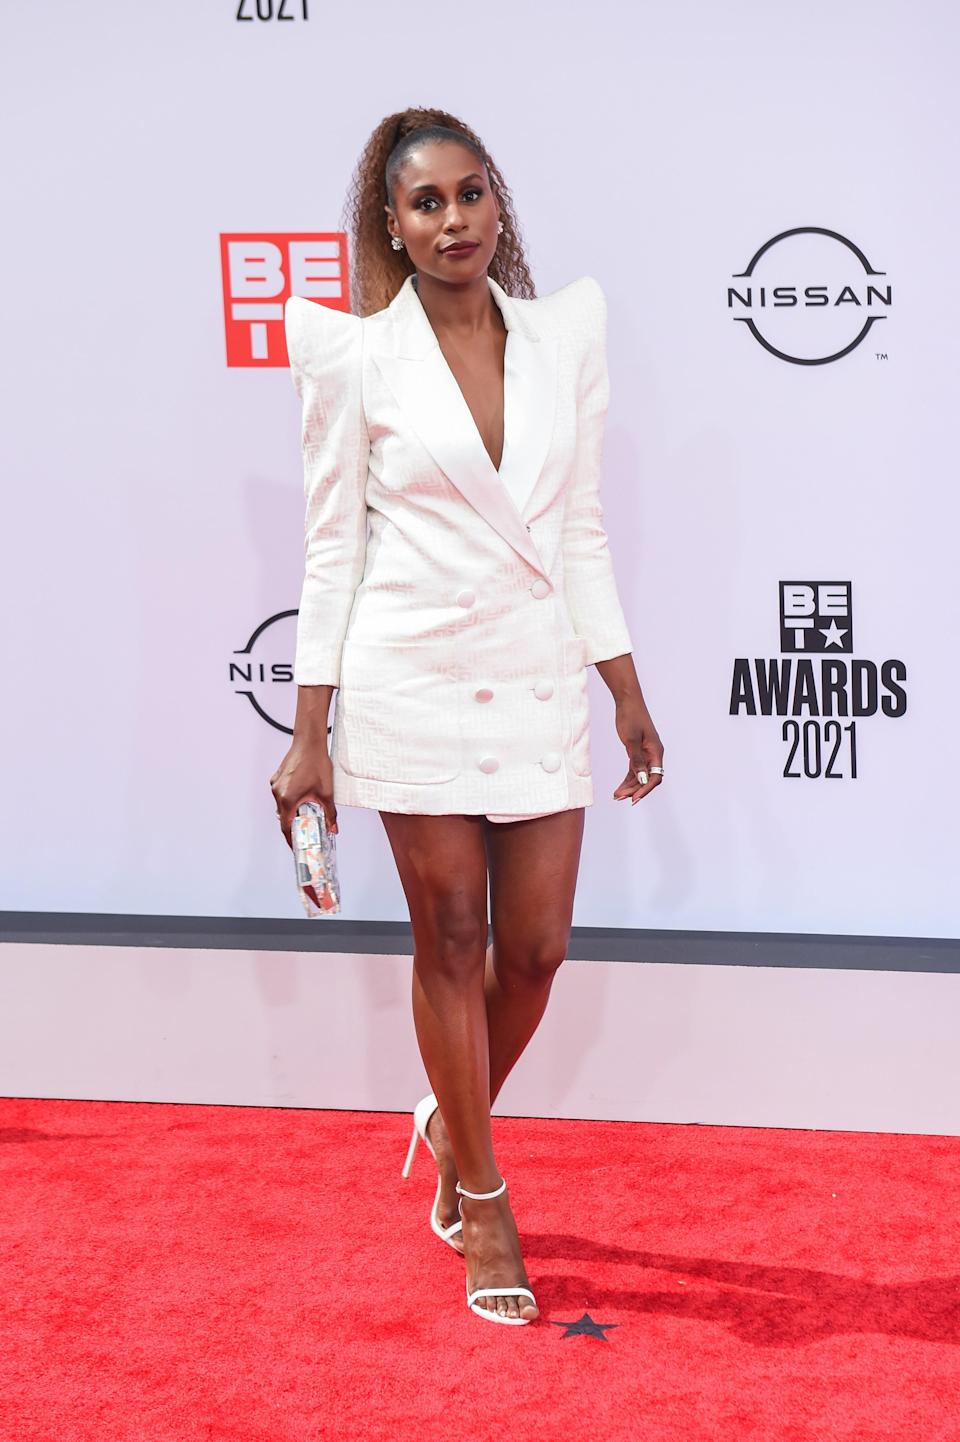 Our favorite Awkward Black Girl came to the BET Awards in a tuxedo dress with Bulgari earrings. Simple yet classy, we love it!